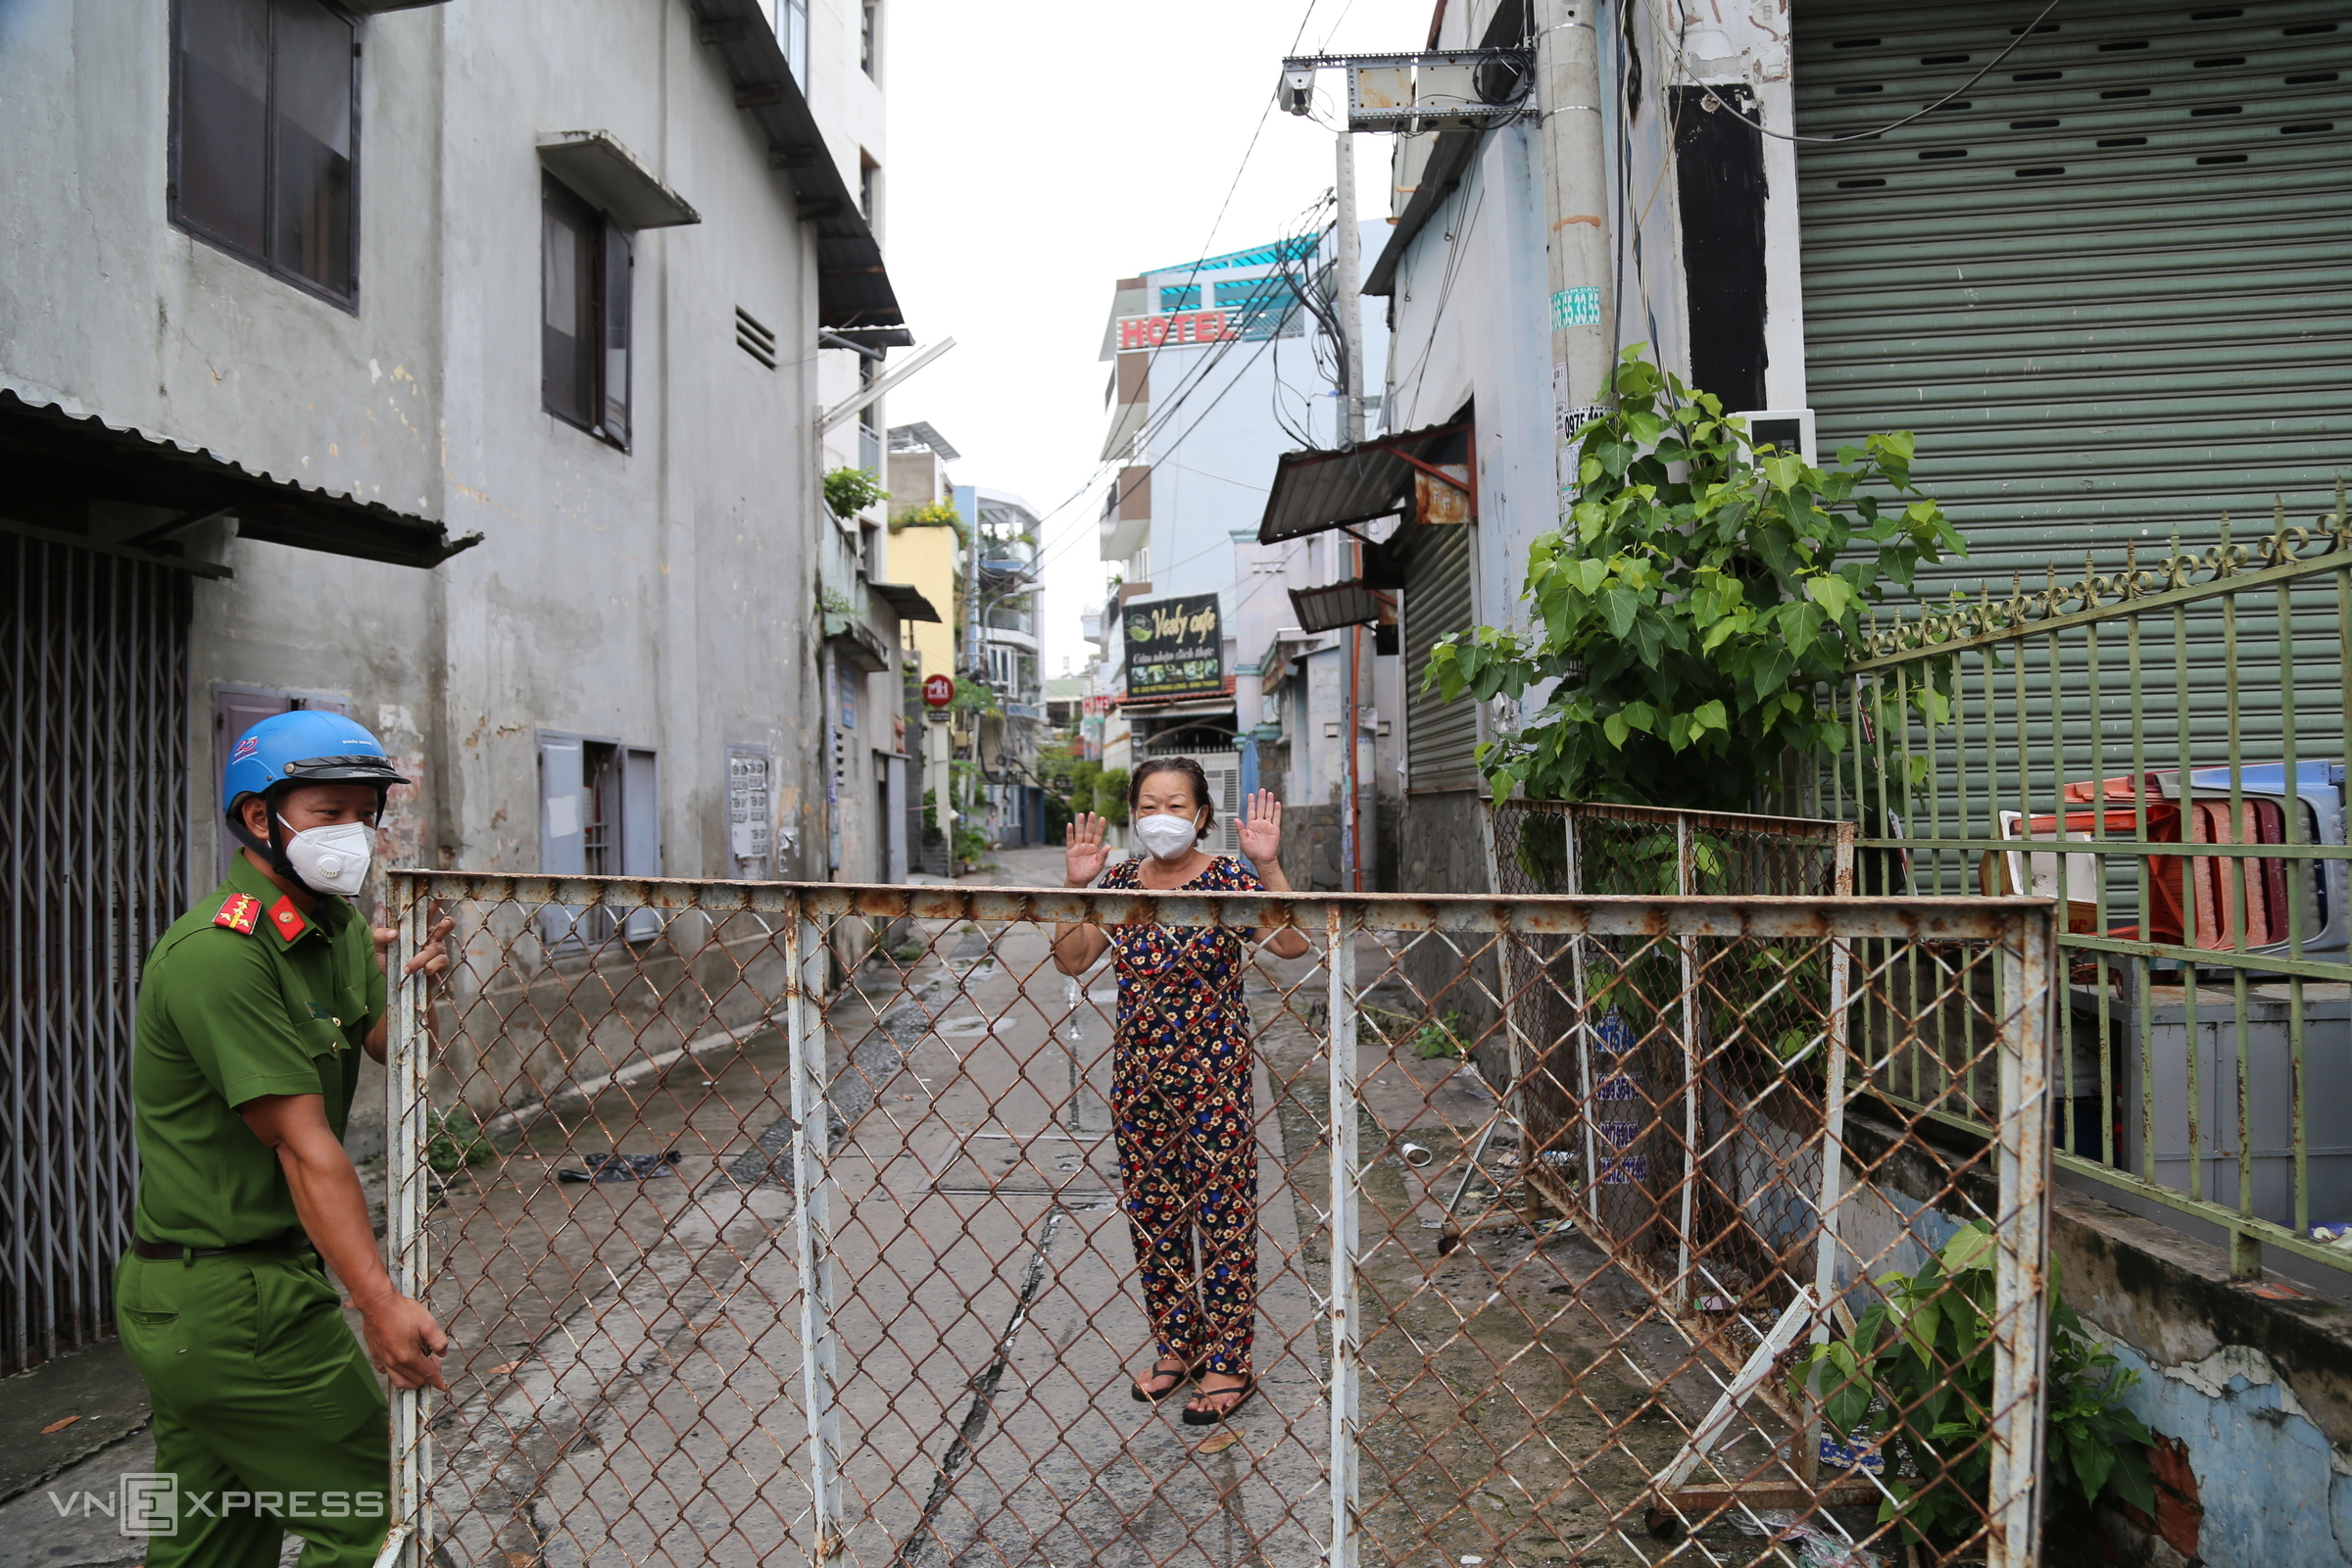 HCMC removes barriers, checkpoints as Covid restrictions go